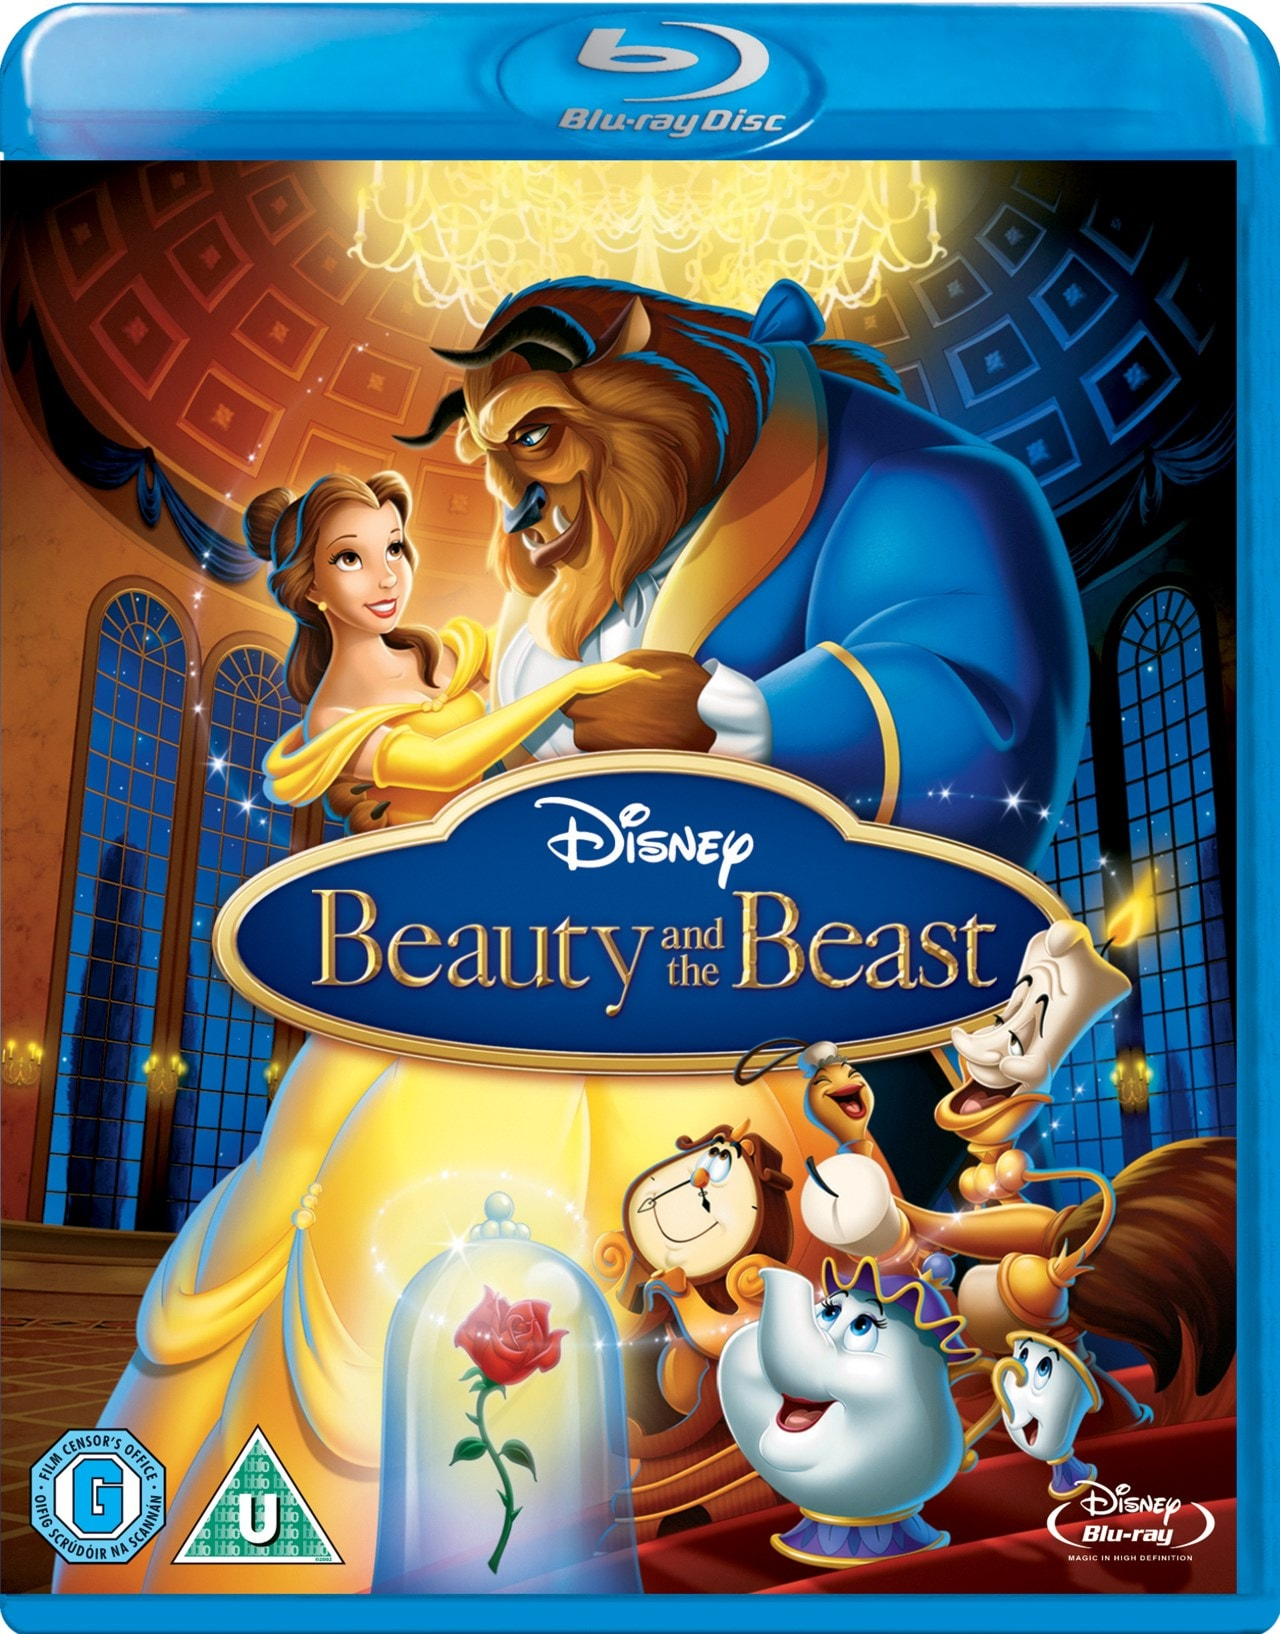 Beauty and the Beast (Disney) - 3